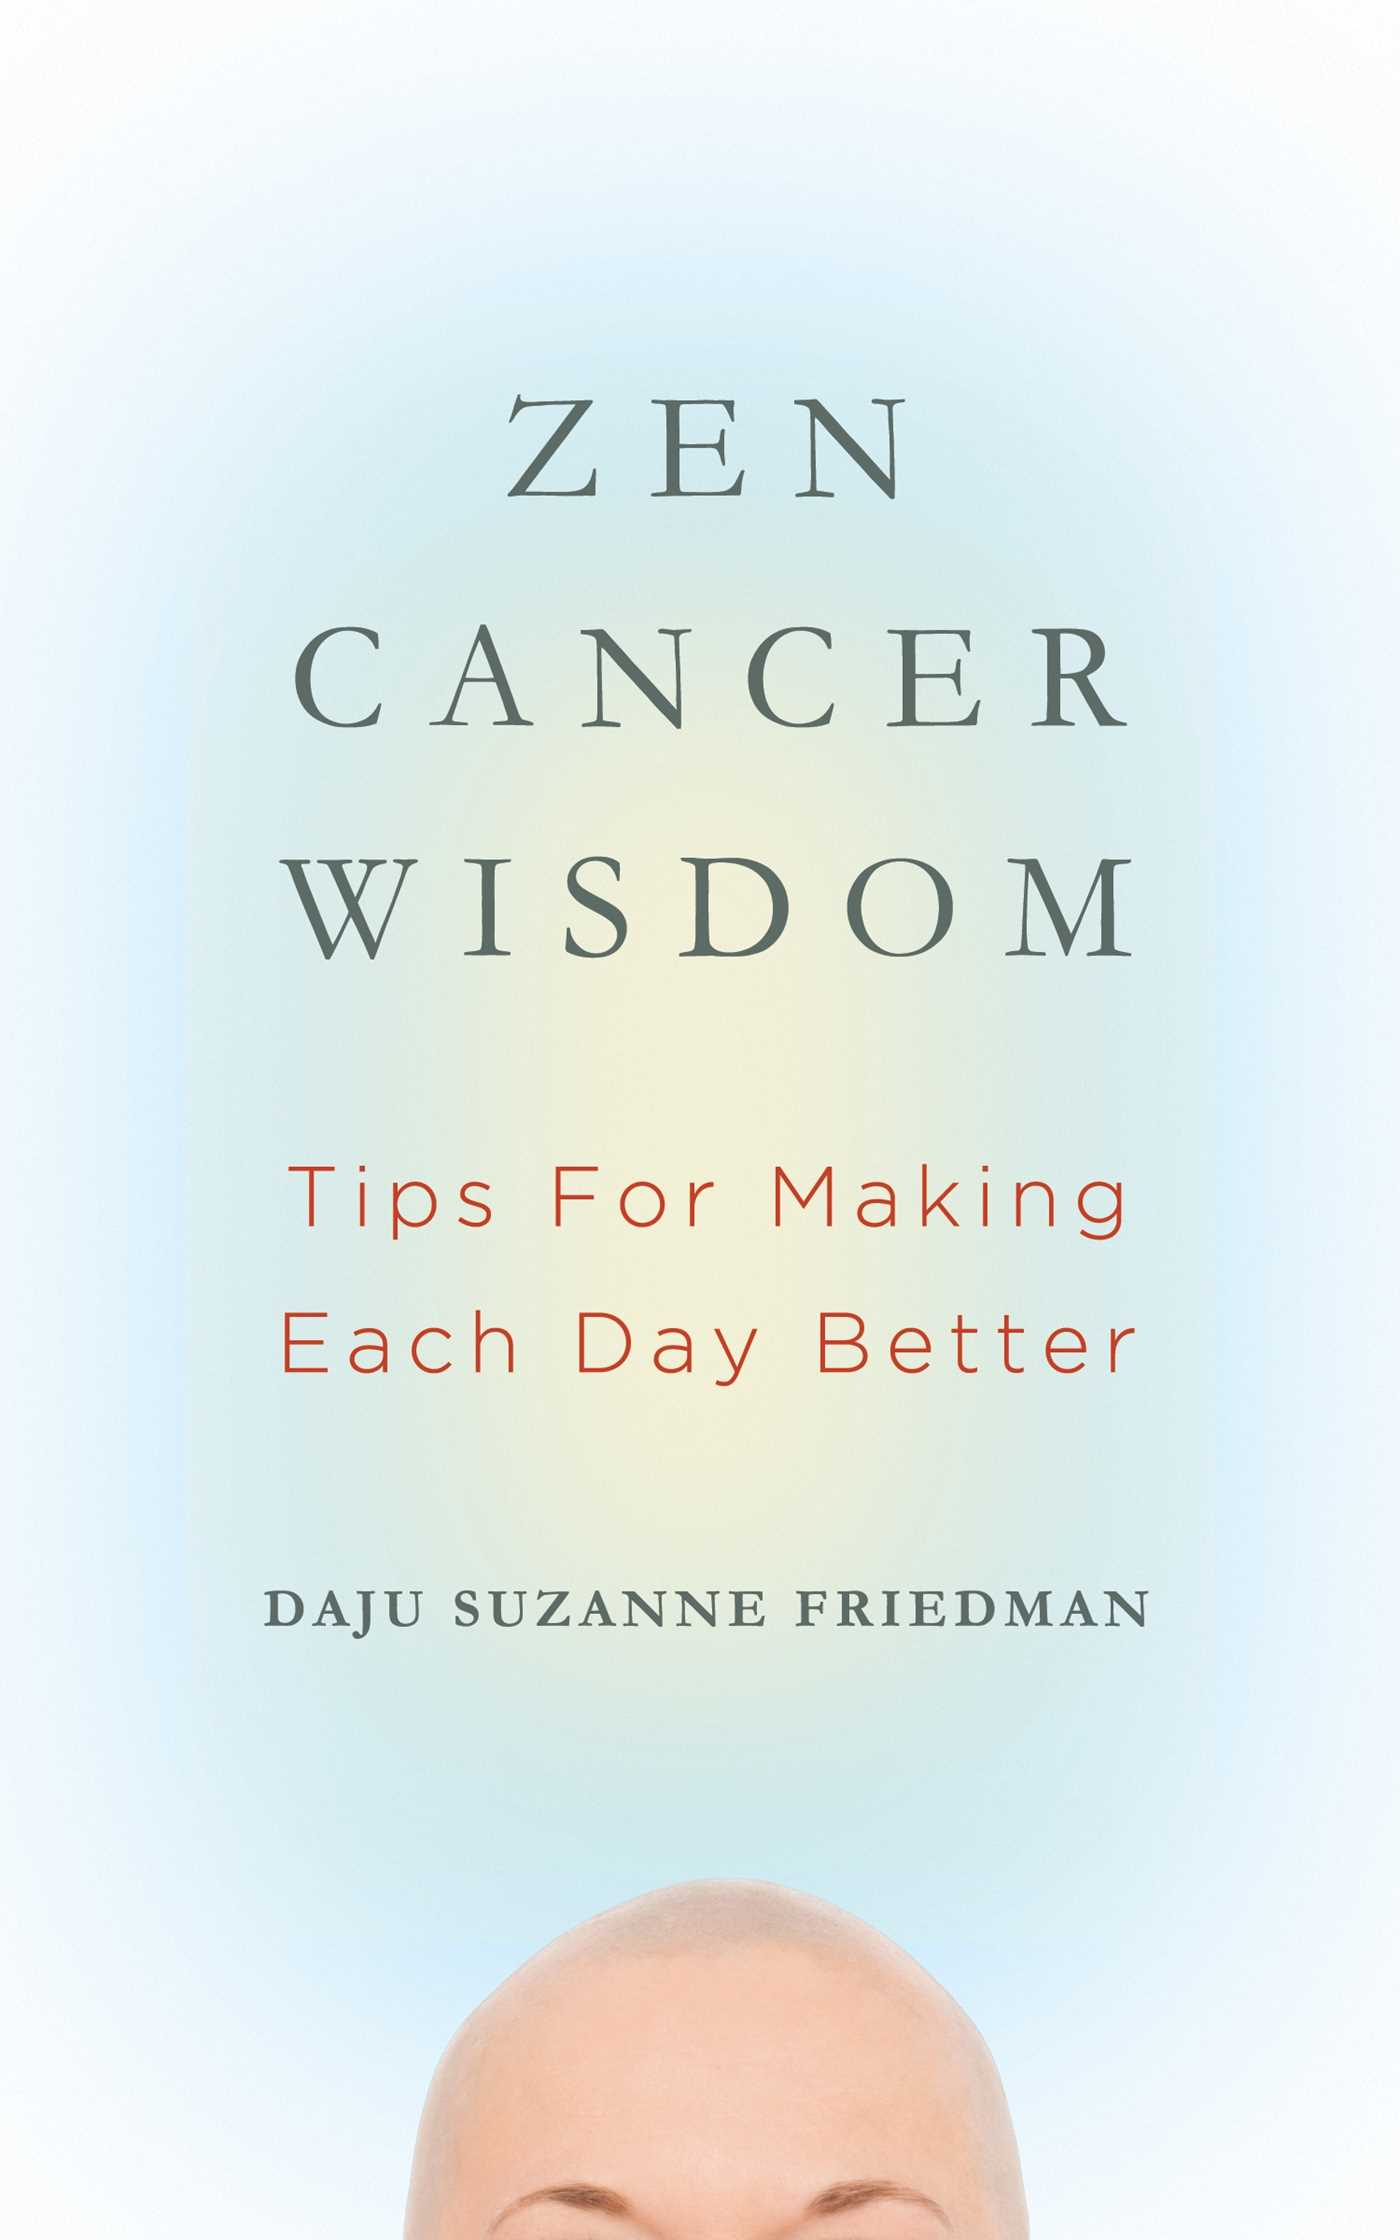 Zen-cancer-wisdom-9781614291466_hr